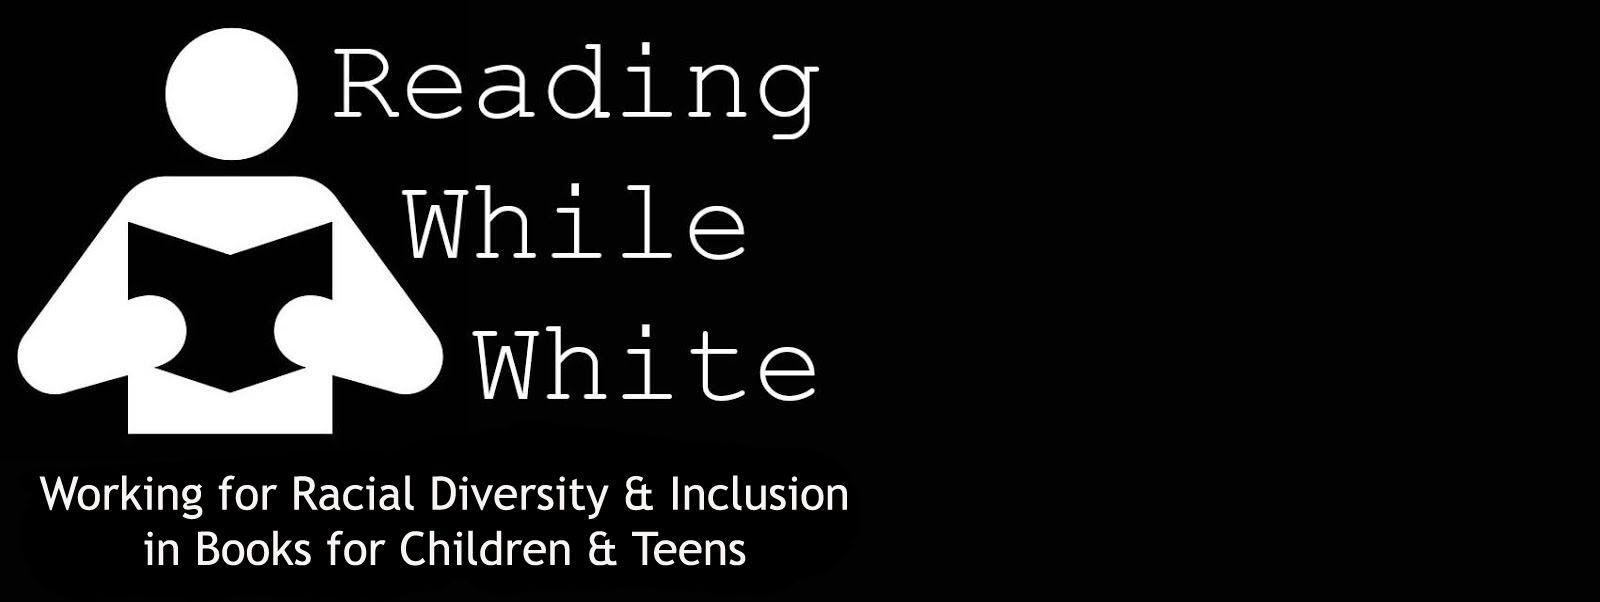 Reading While White